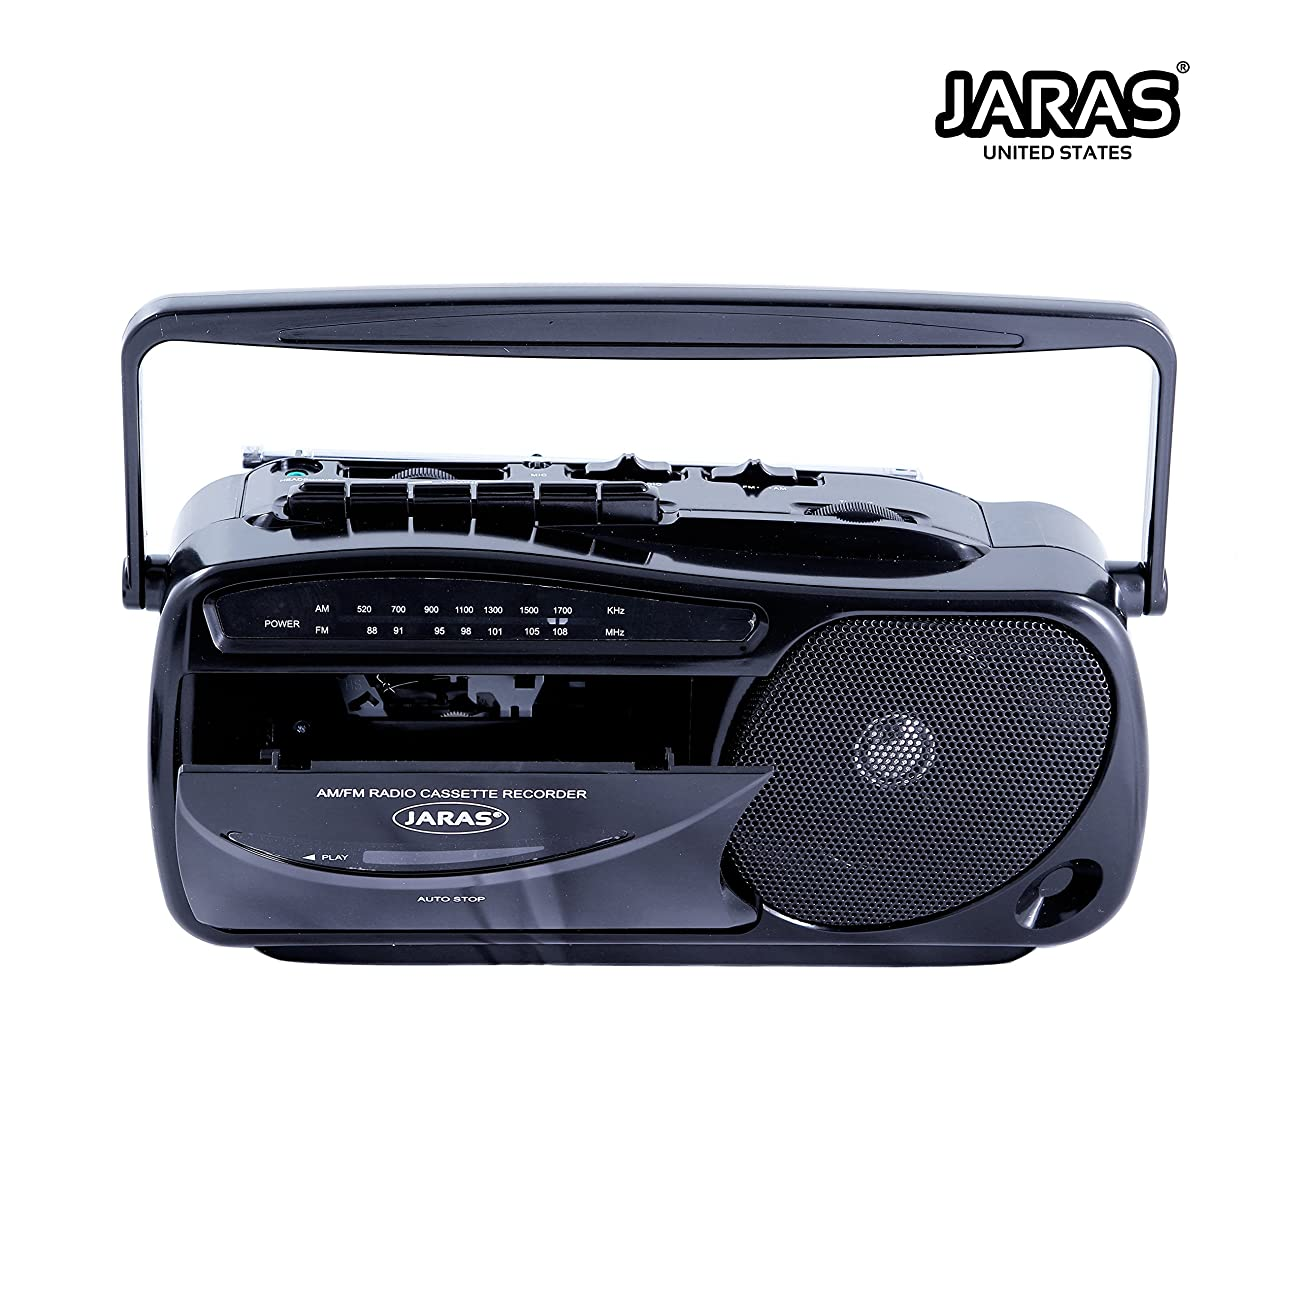 Jaras JJ-2618 Limited Edition Portable Boombox Tape Cassette Player/recorder with AM/FM Radio Stereo Speakers & Headphone Jack 2